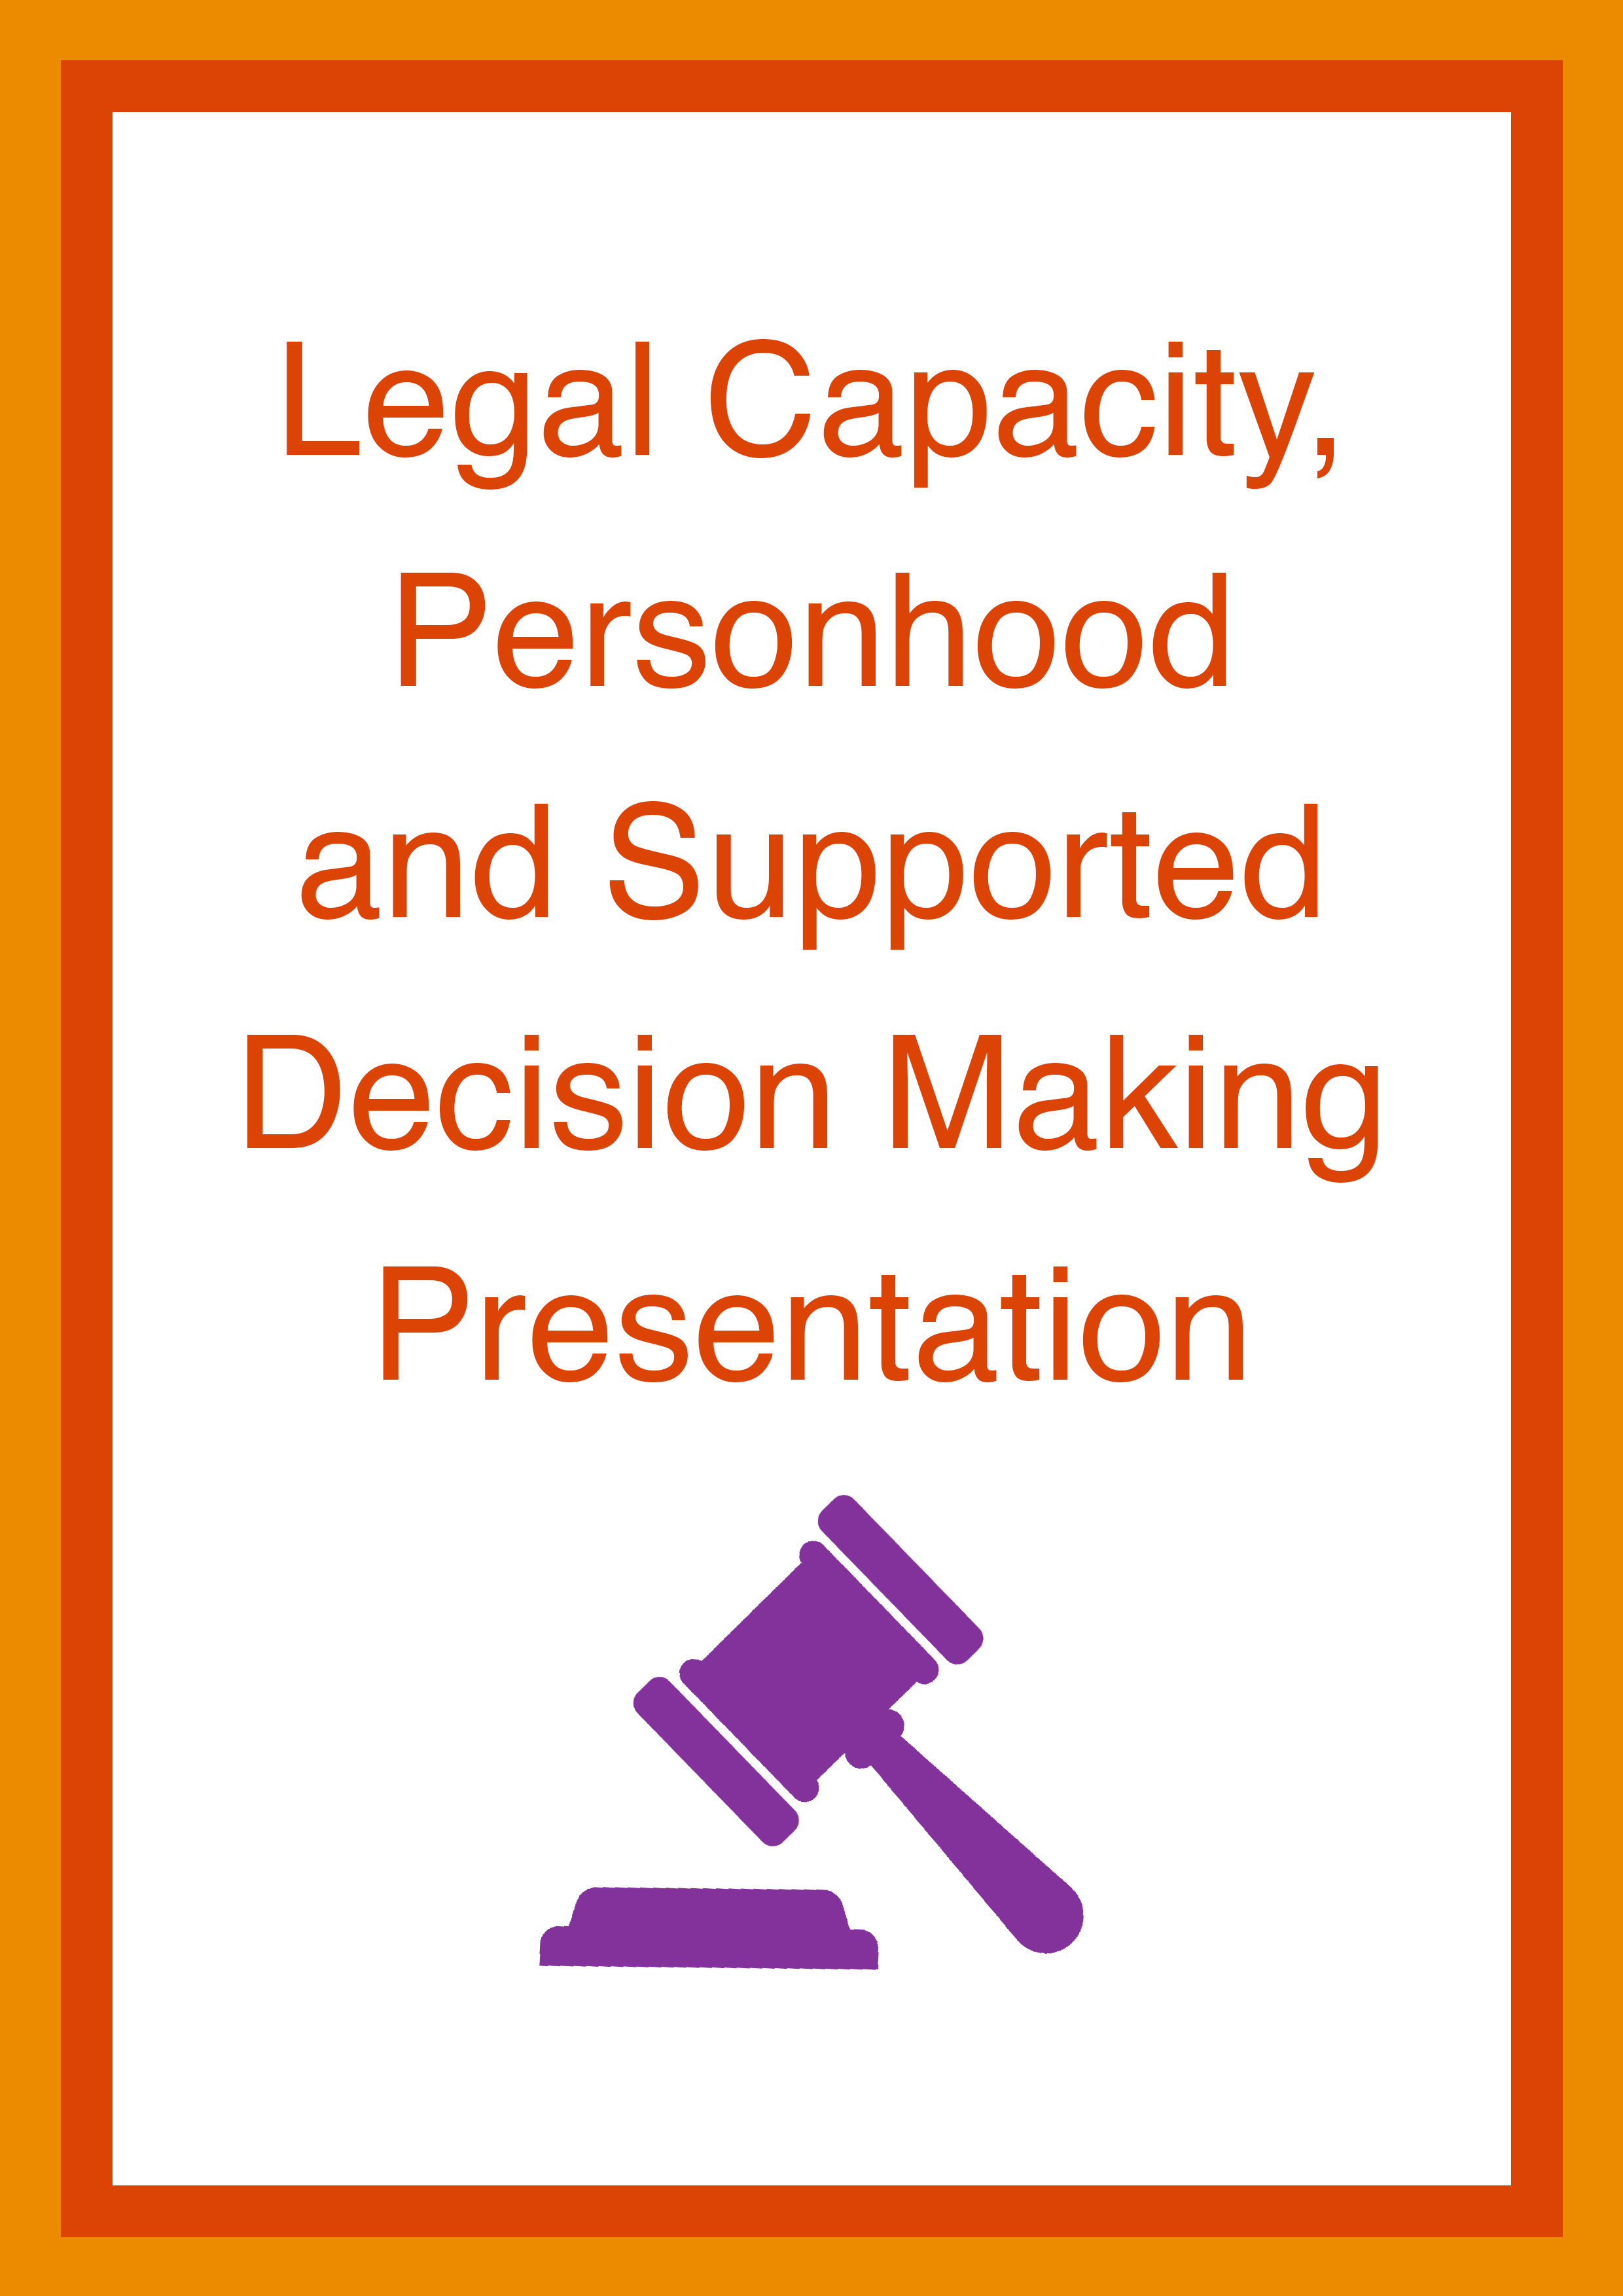 Cover art for: Legal Capacity, Personhood and Supported Decision Making